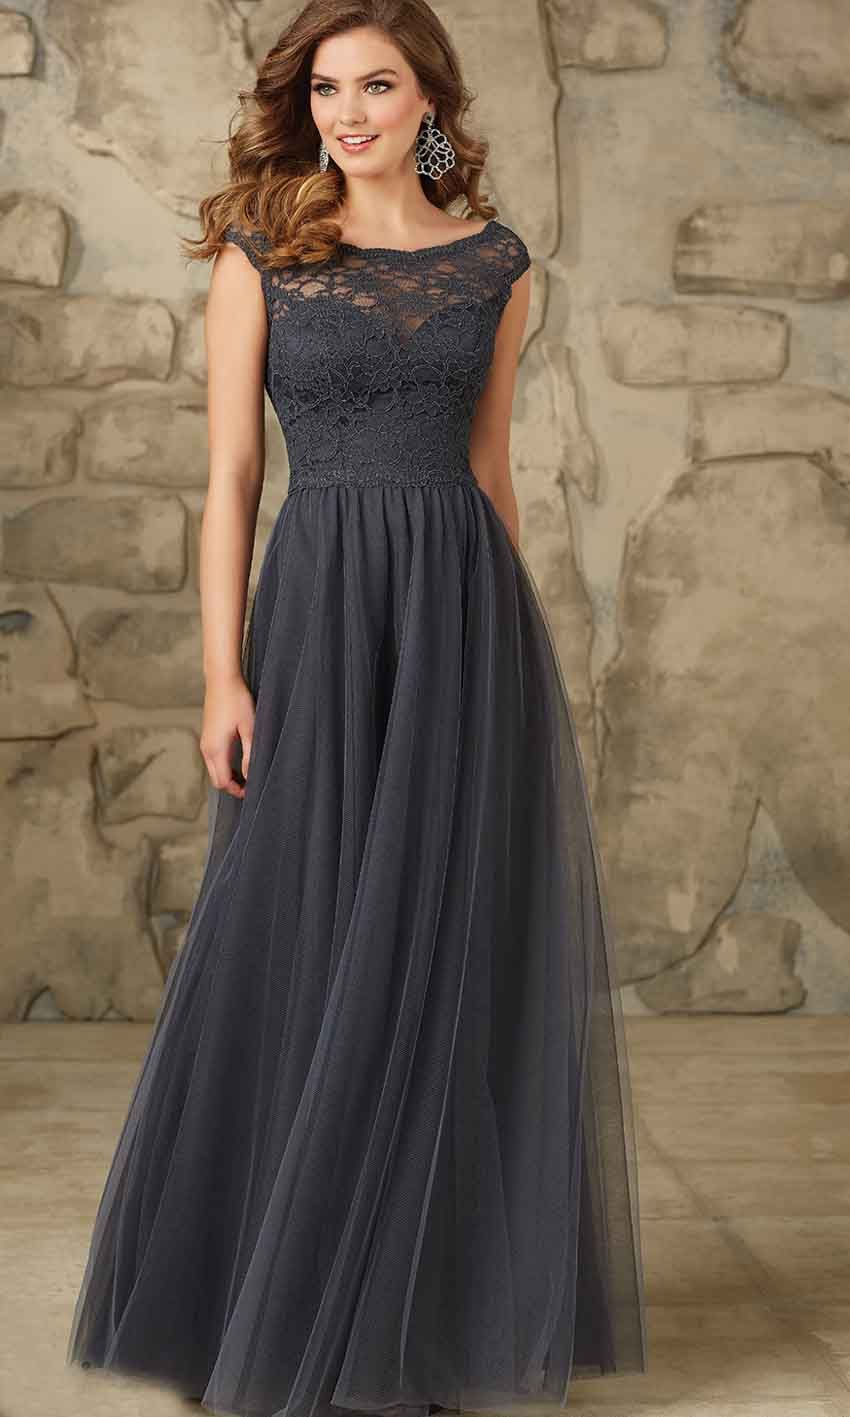 Dark Gray Long Lace Bridesmaid Dresses UK KSP401 | uk prom dresses ...